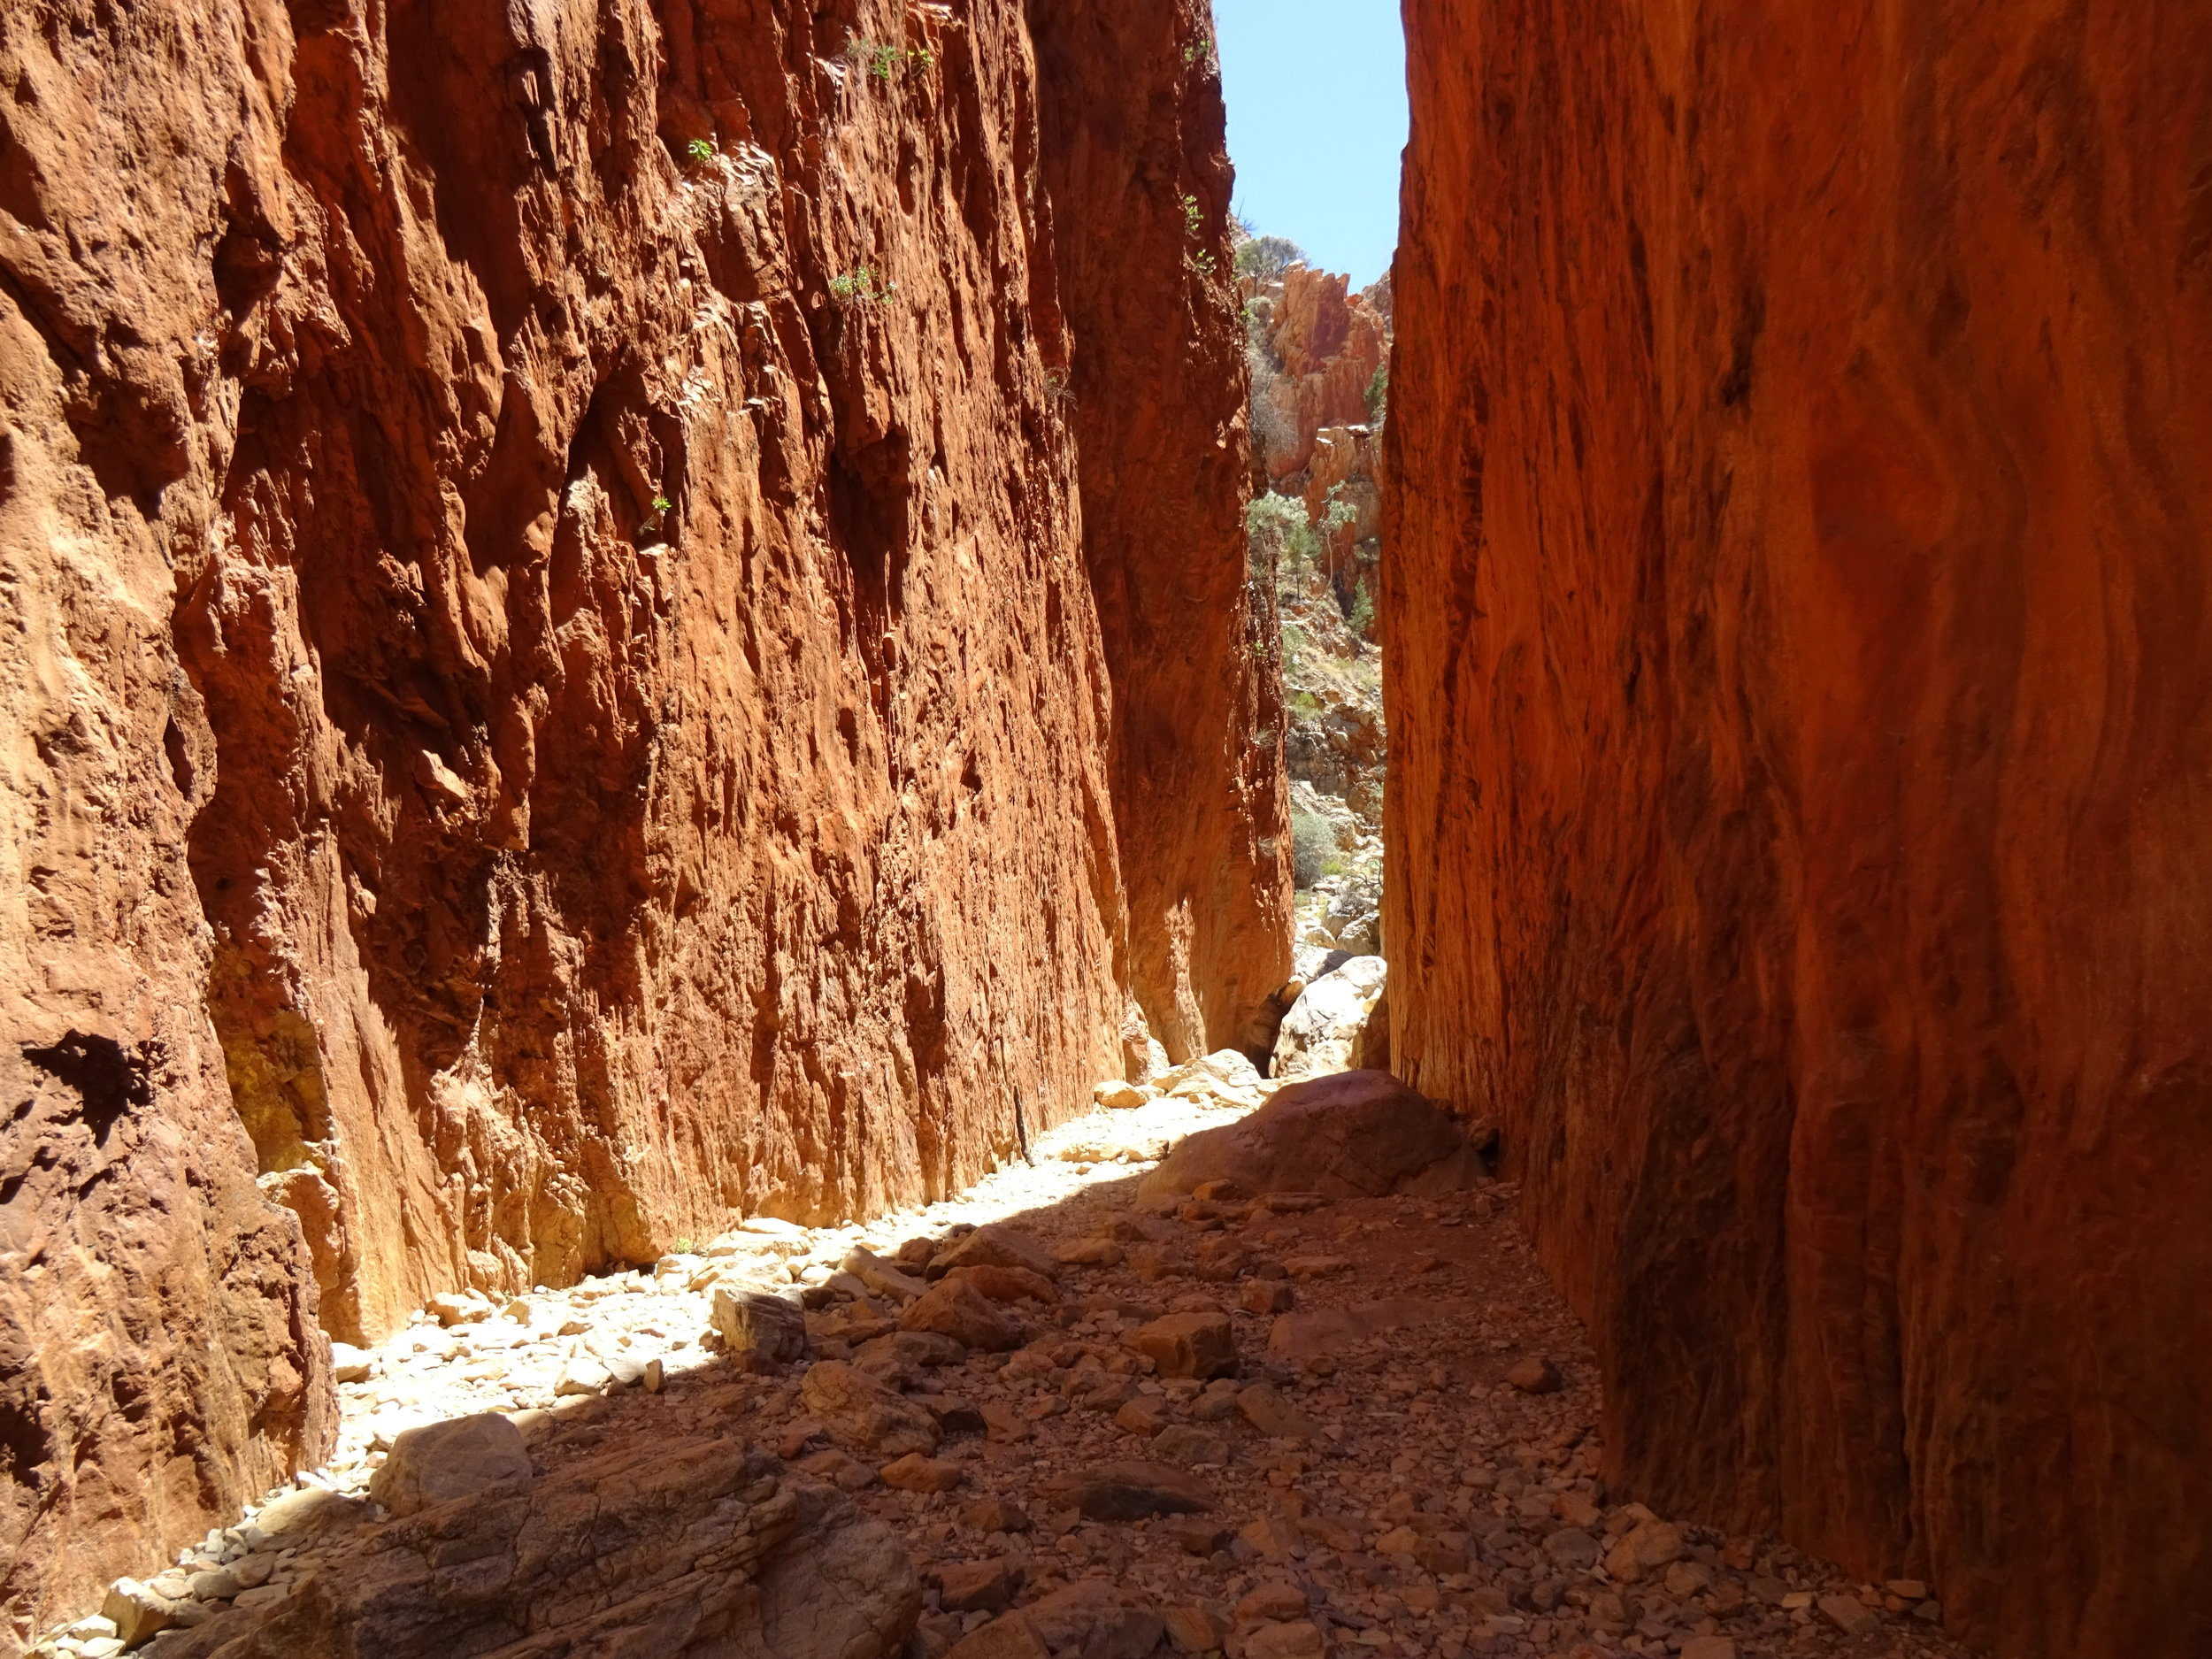 NT, Standley Chasm